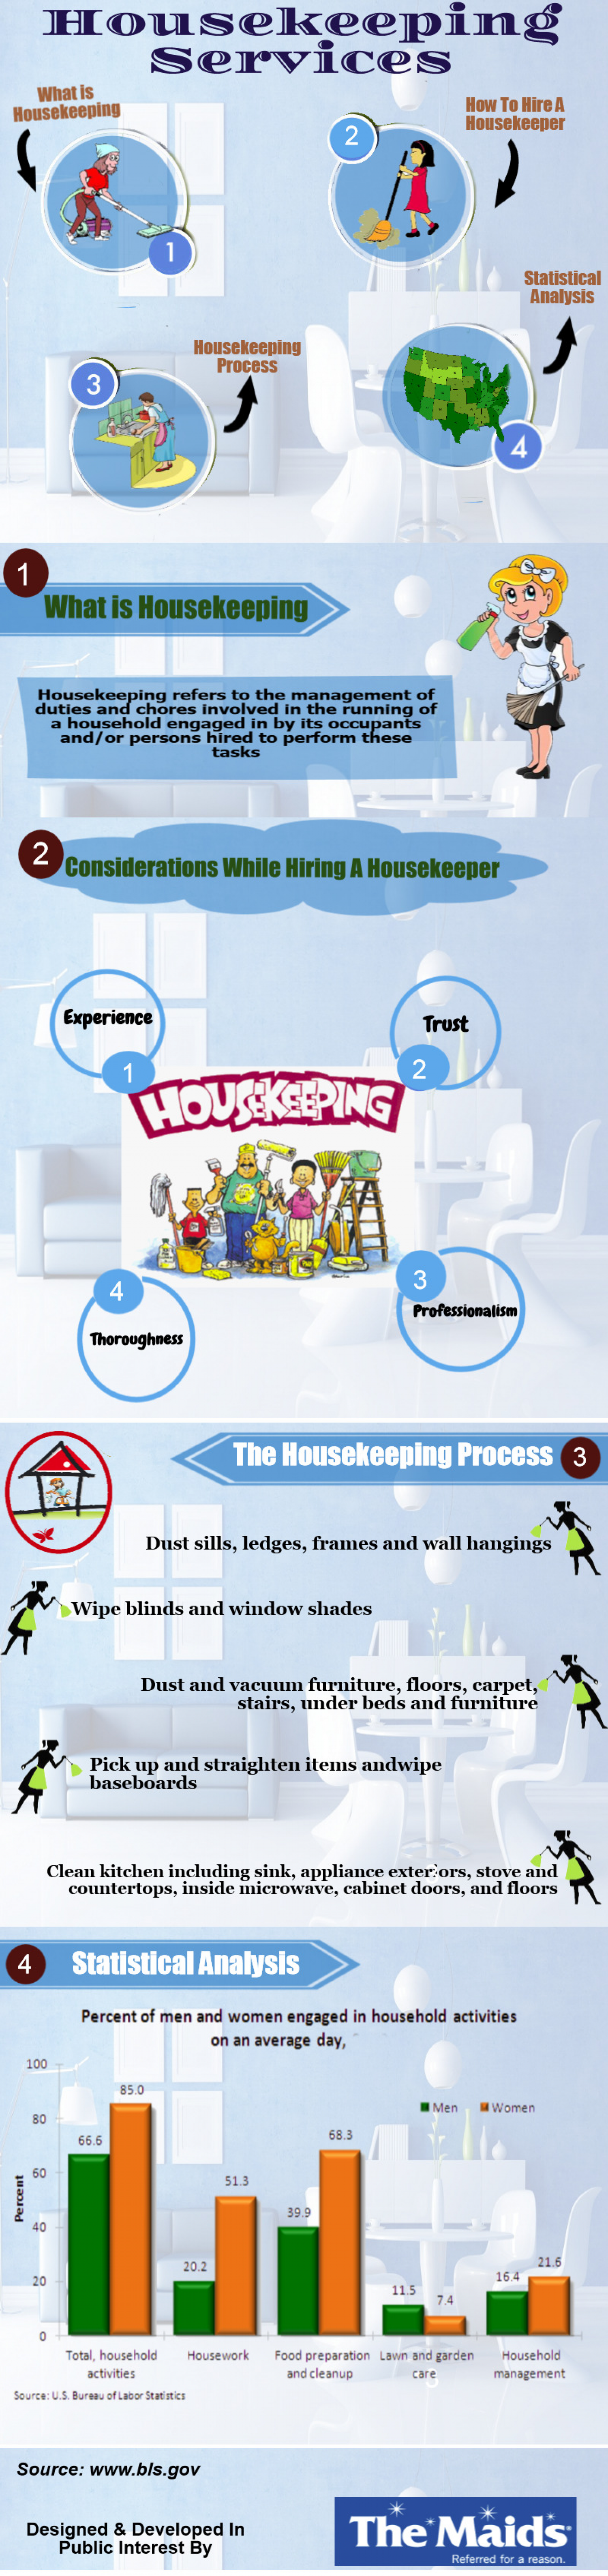 Housekeeping Serivces Infographic